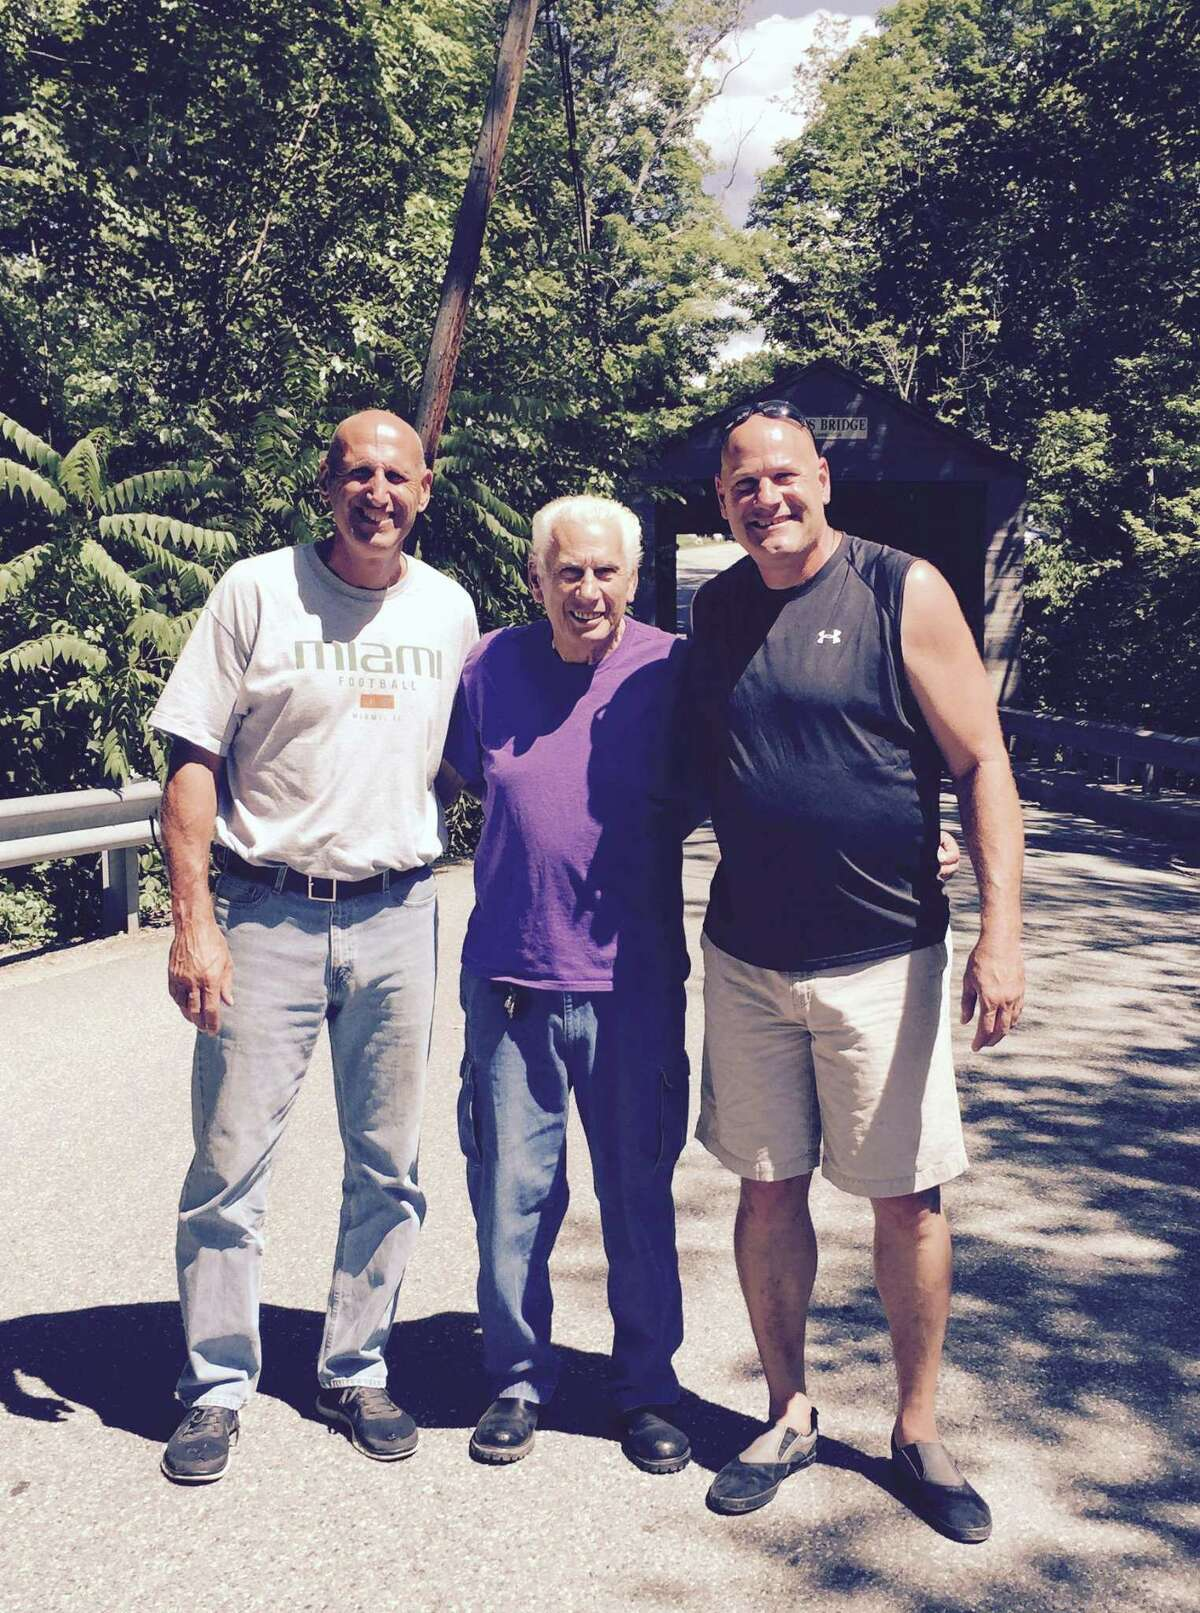 East Haven Mayor Joe Carfora, right, with his father, Al Carfora Jr., center, and brother Al Carfora III.